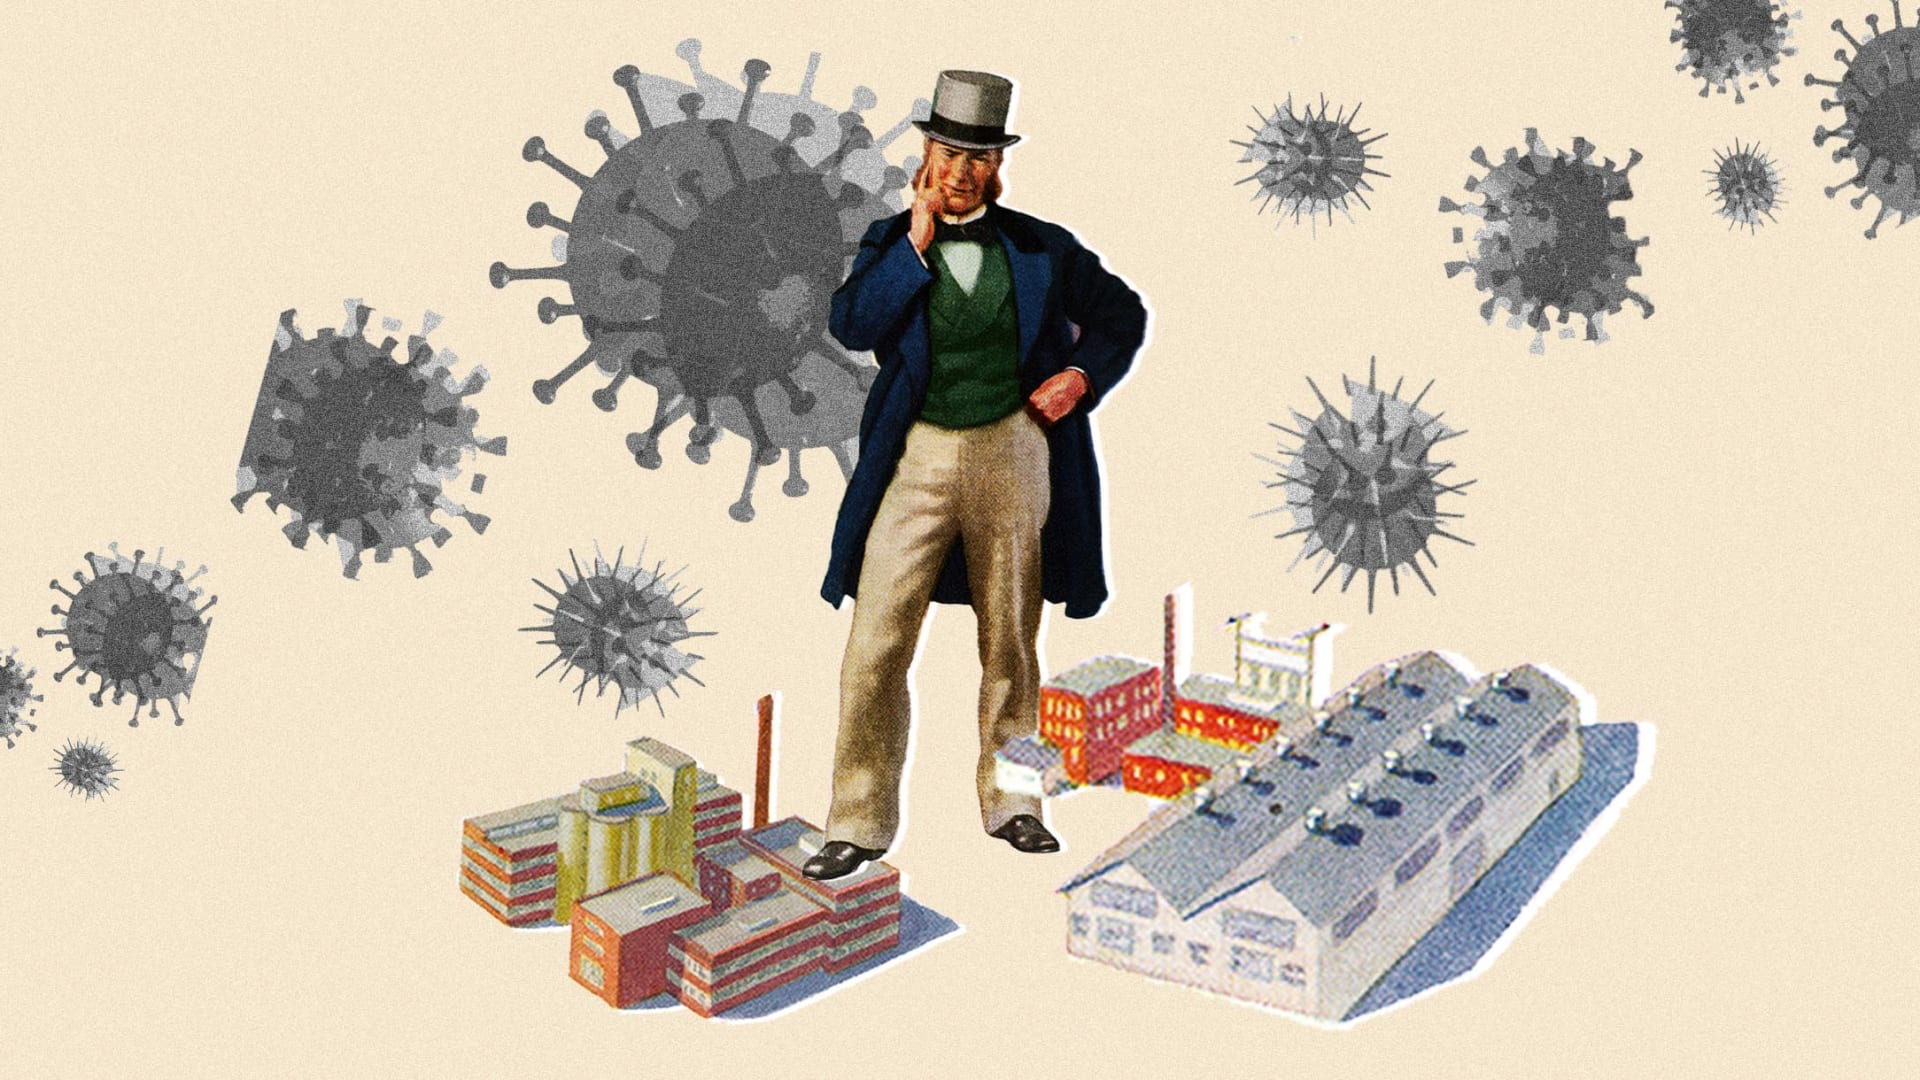 How to Manage an Acquisition During the Pandemic